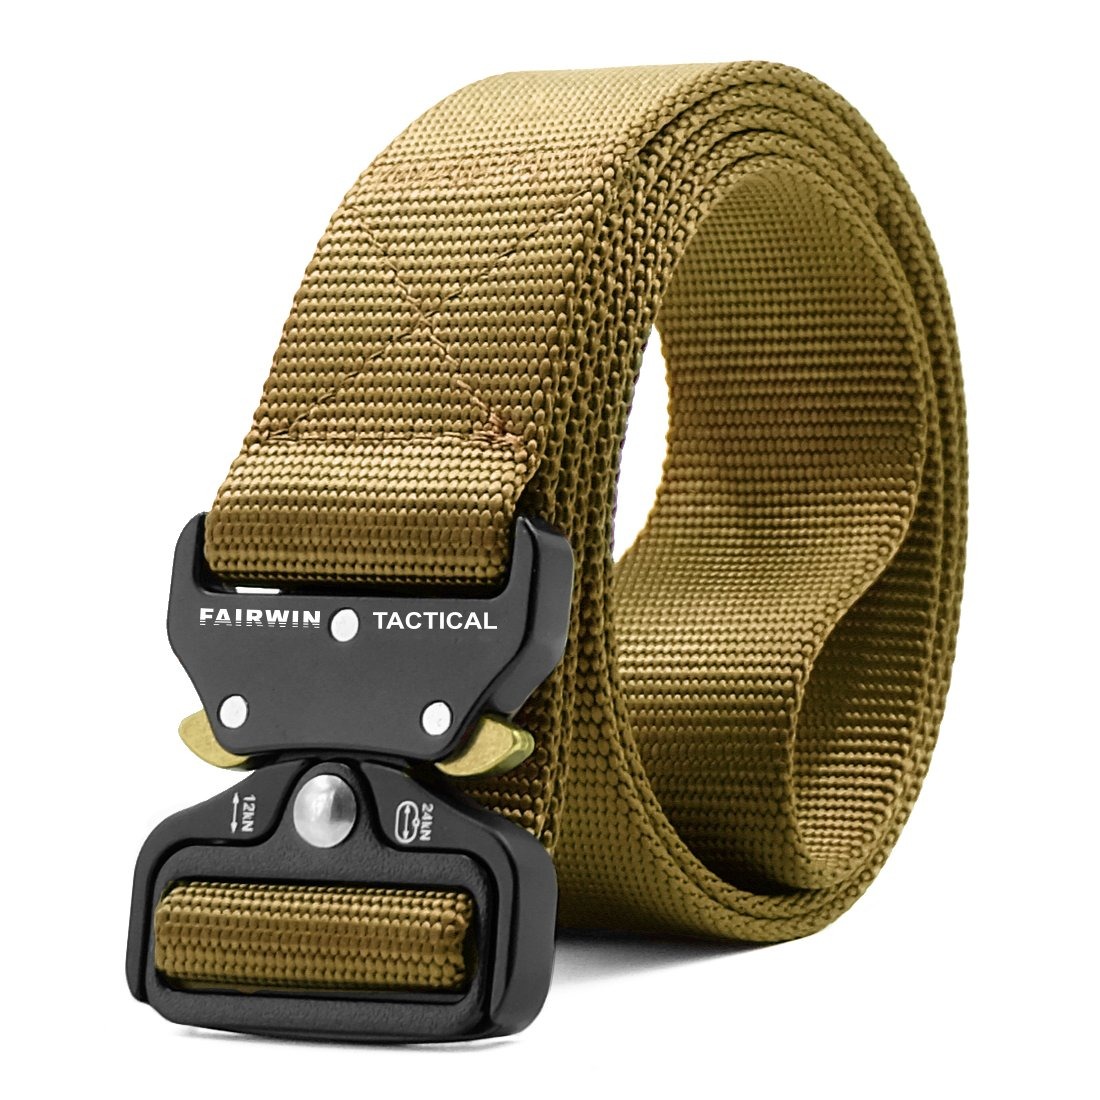 Fairwin Tactical Belt, Military Style Webbing Riggers Web Belt with Heavy-Duty Quick-Release Metal Buckle in Delicate Gift Box